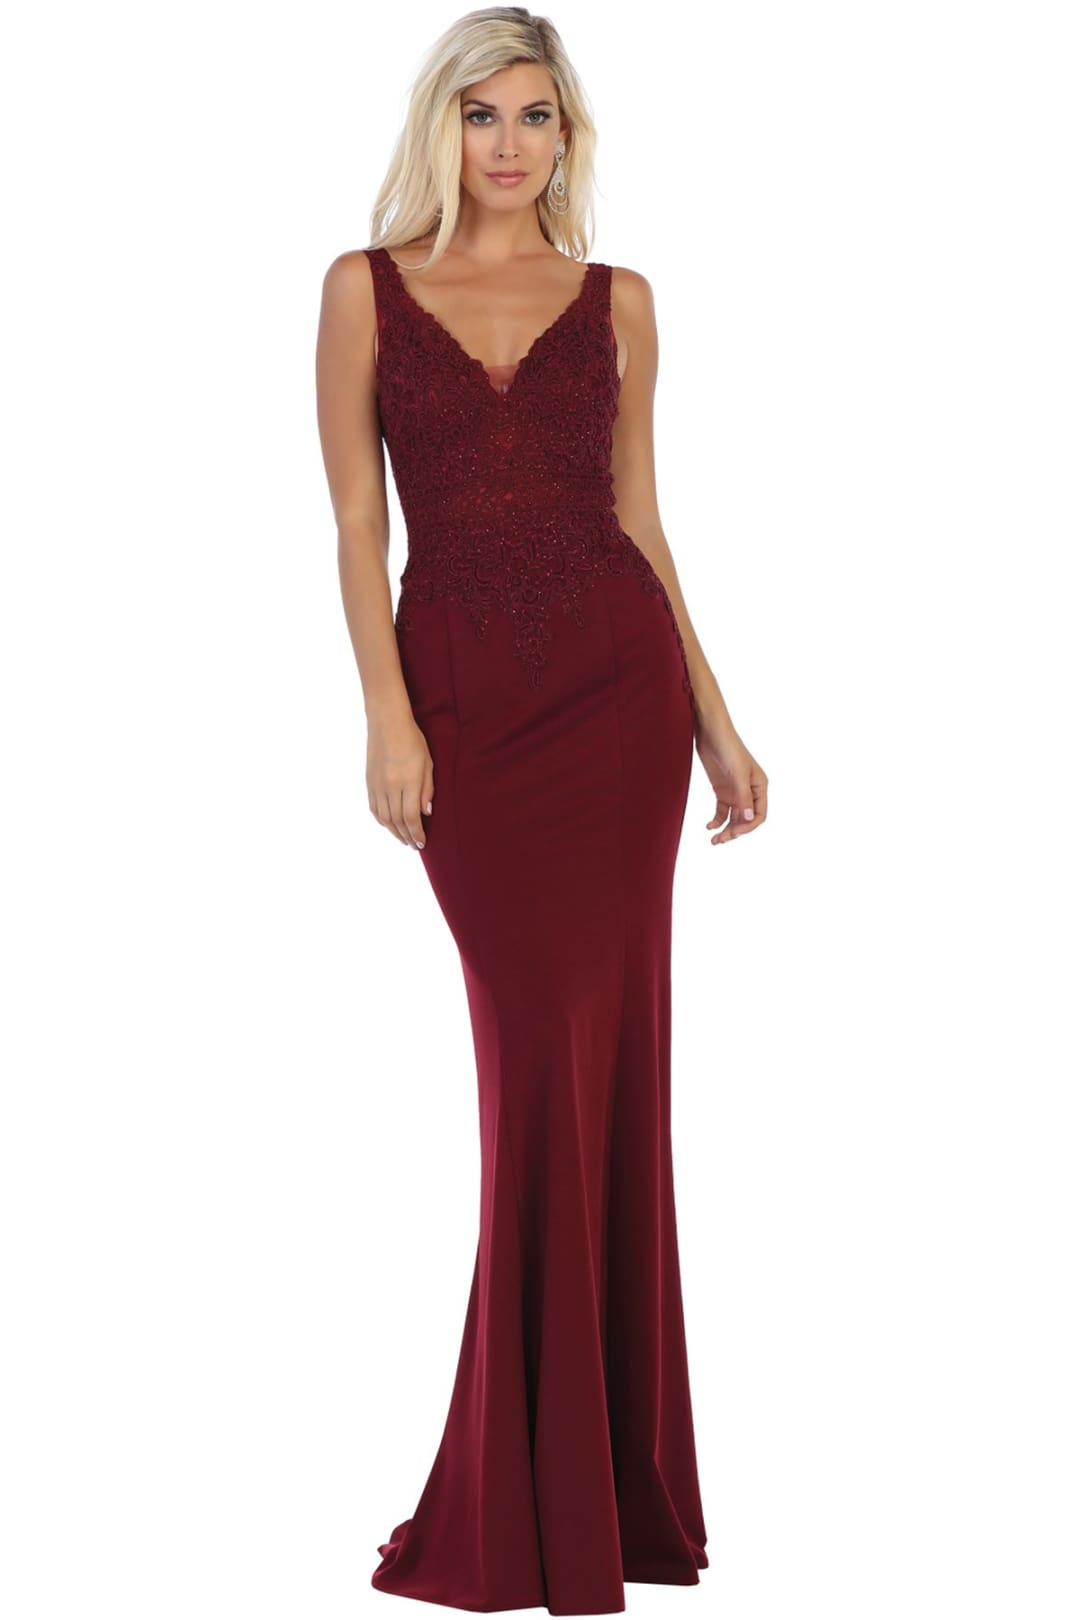 Modest V-Neck Evening Gown - Burgundy / 4